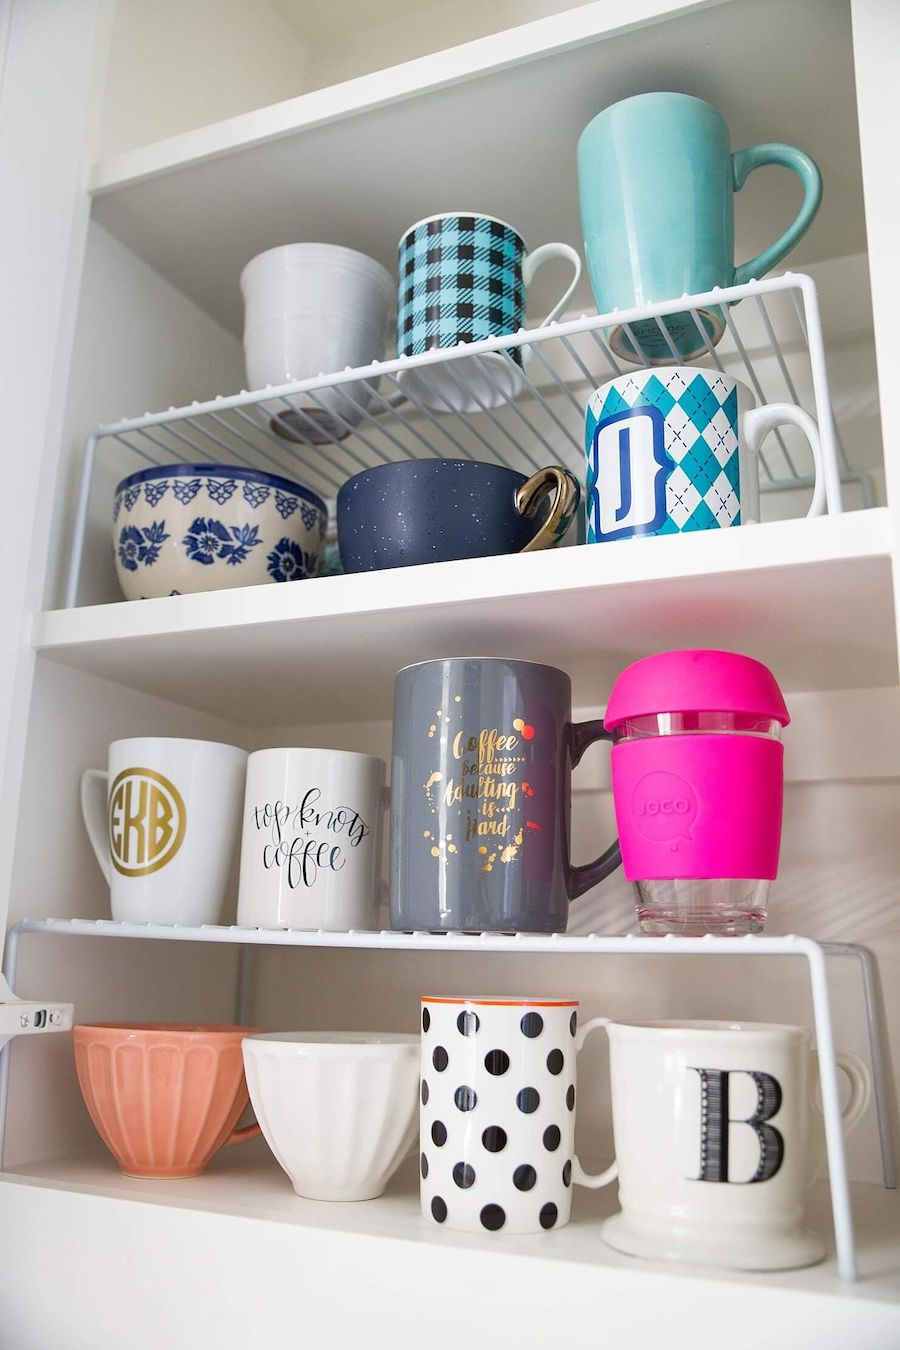 Kitchen Cabinet Helper Shelf for Organizing Coffee Mugs via Brighton The Day